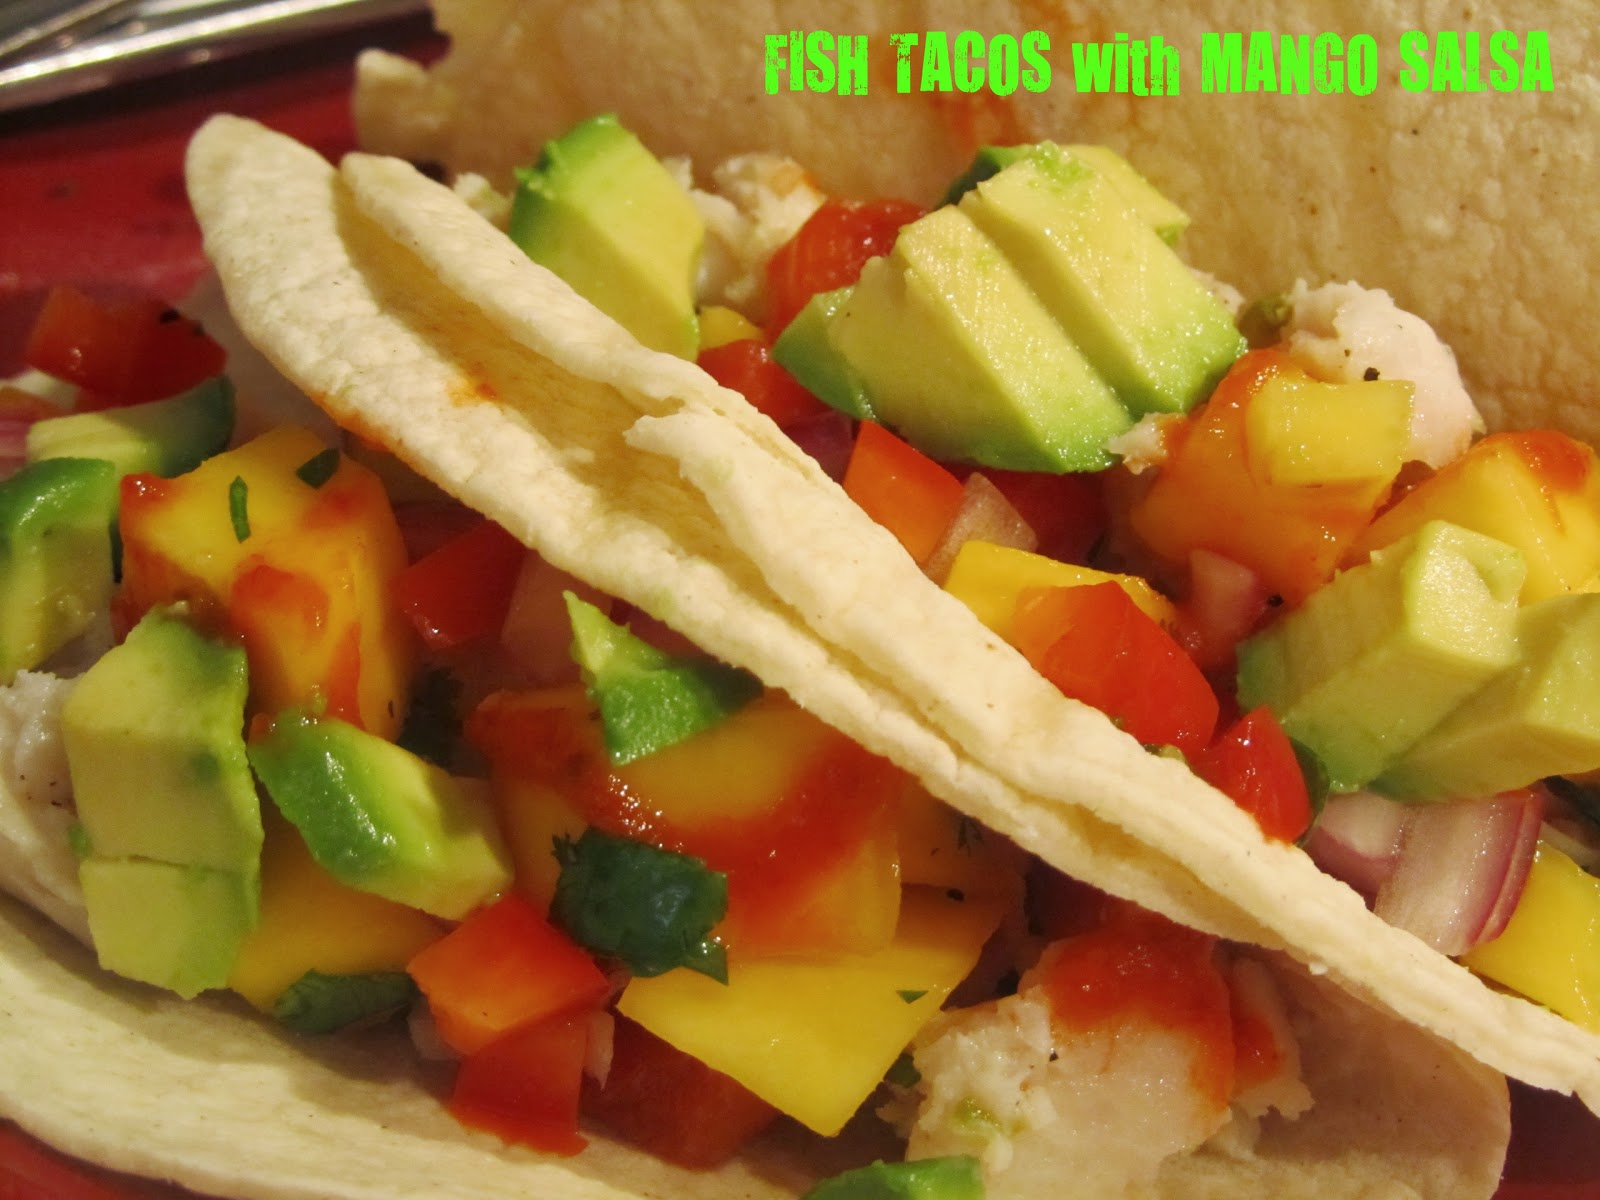 Terracotta caf fish tacos with mango salsa for Salsa for fish tacos